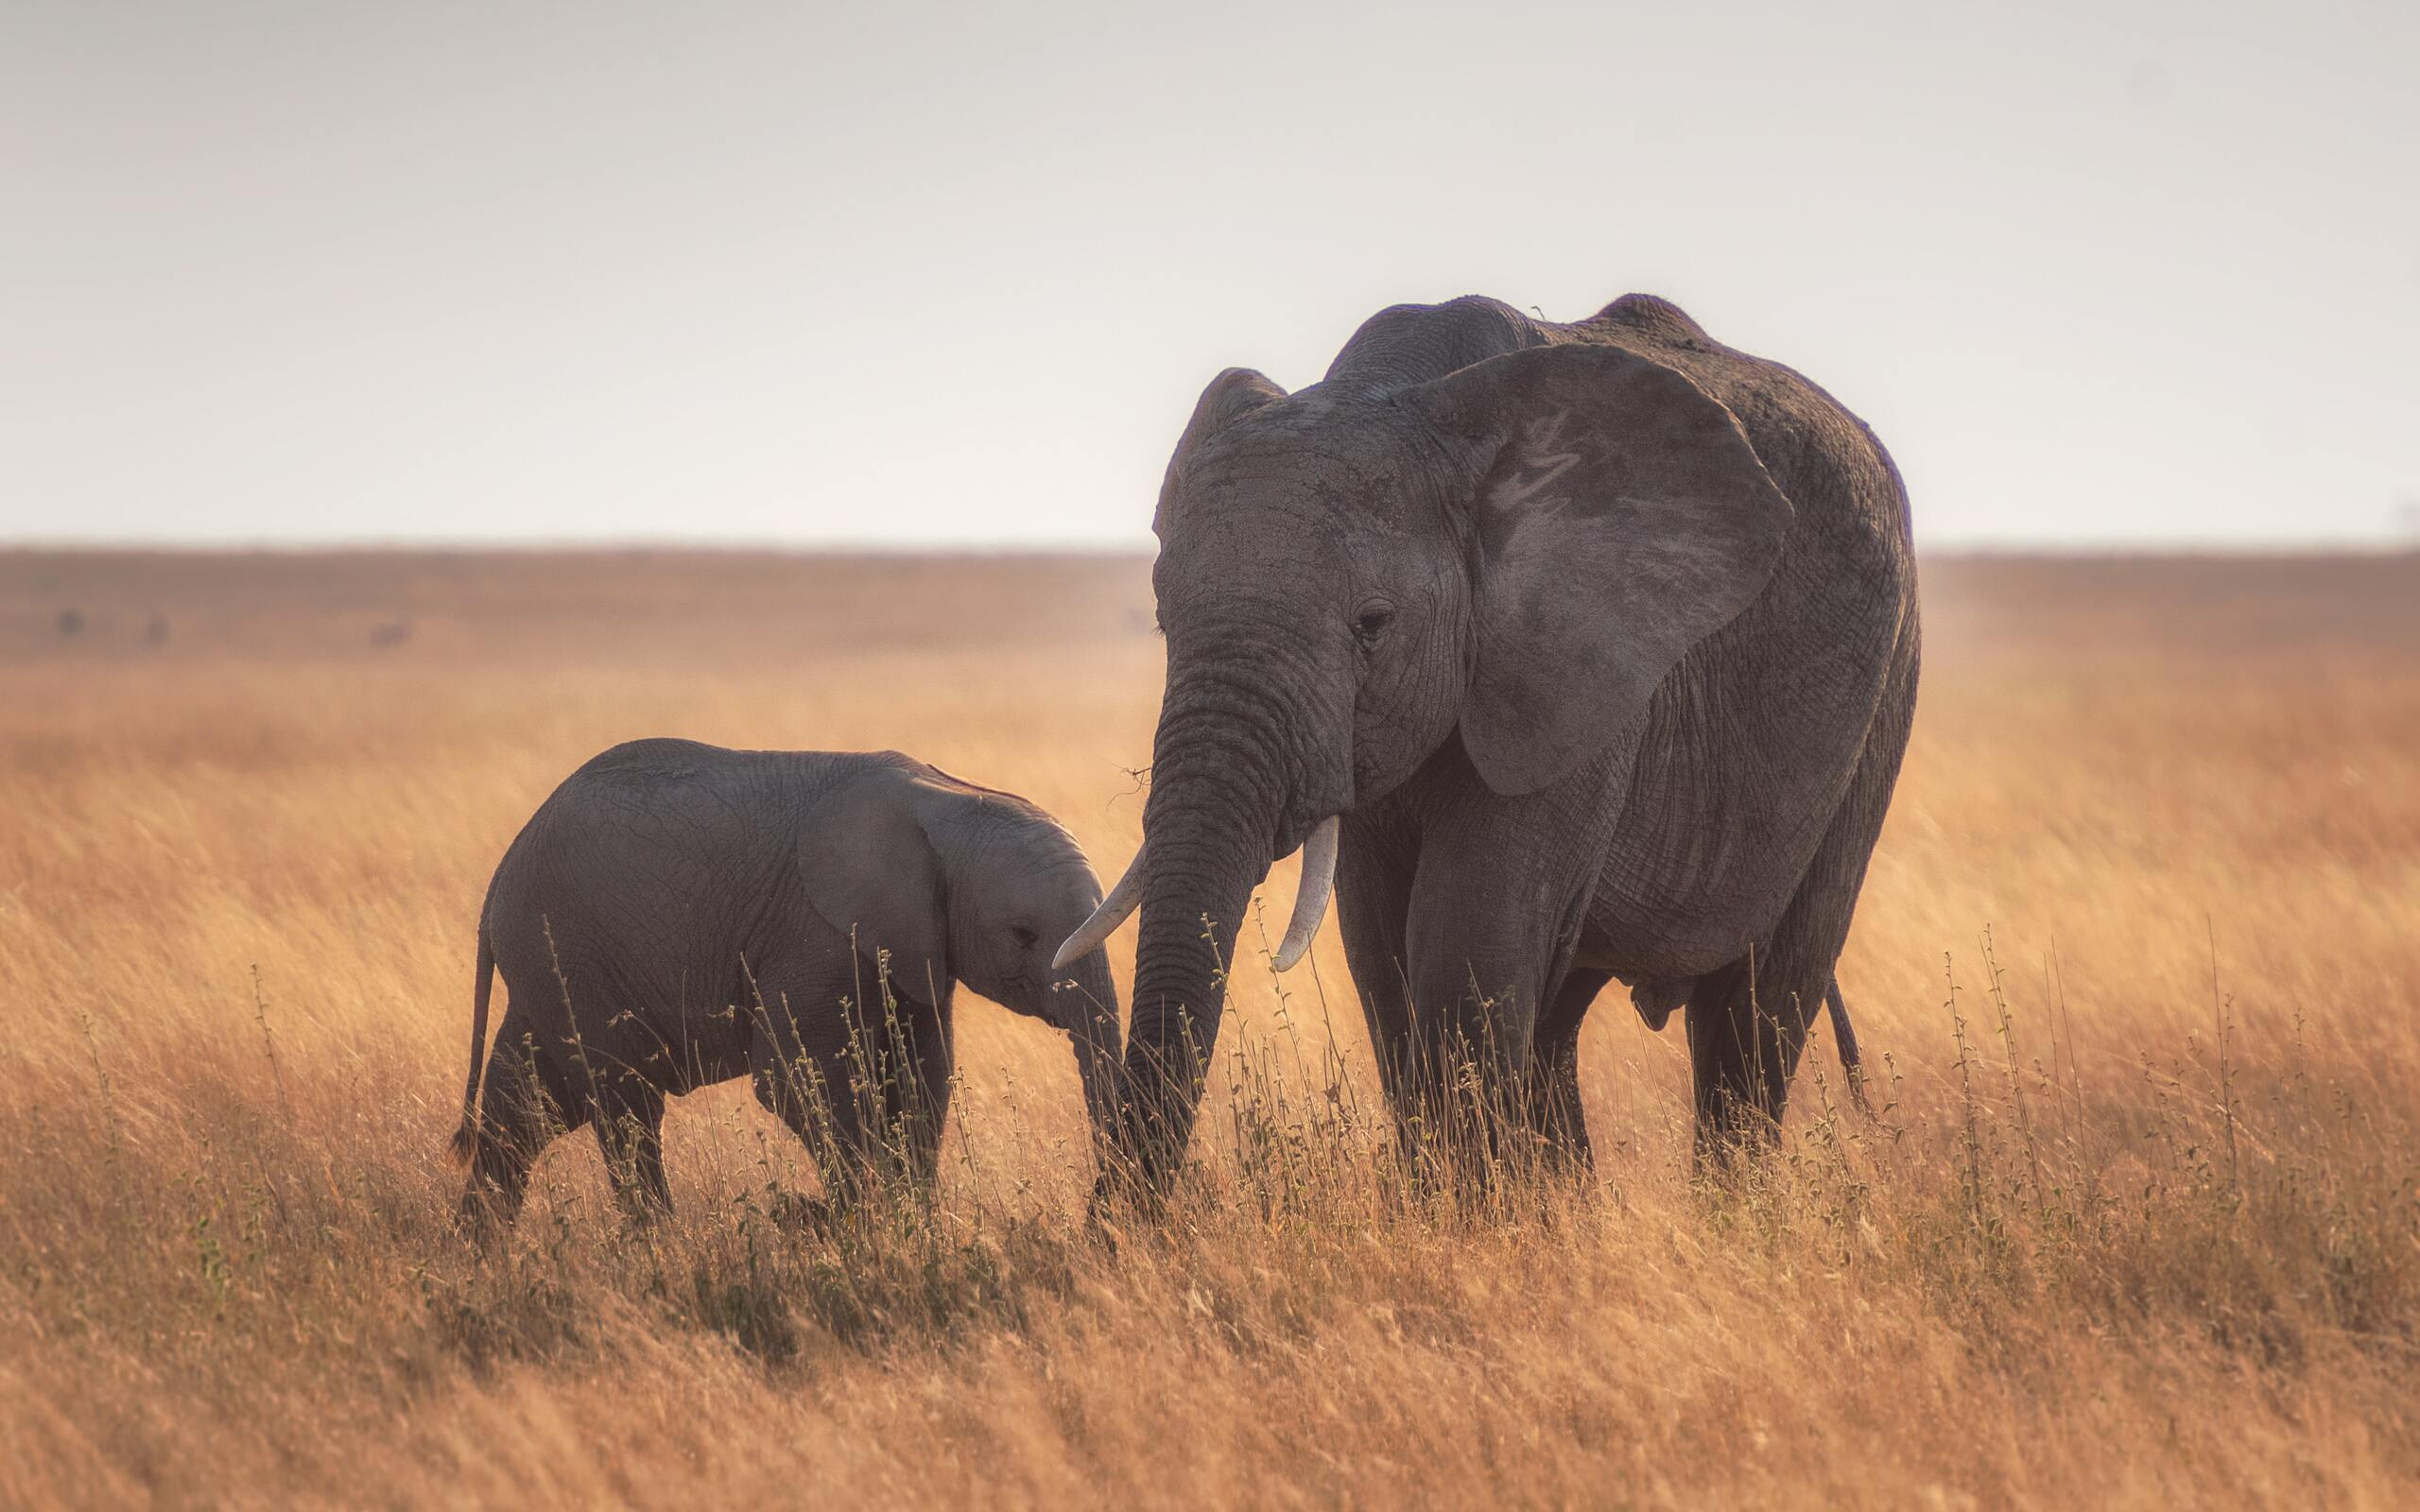 mother-baby-elephant-4k-ki.jpg